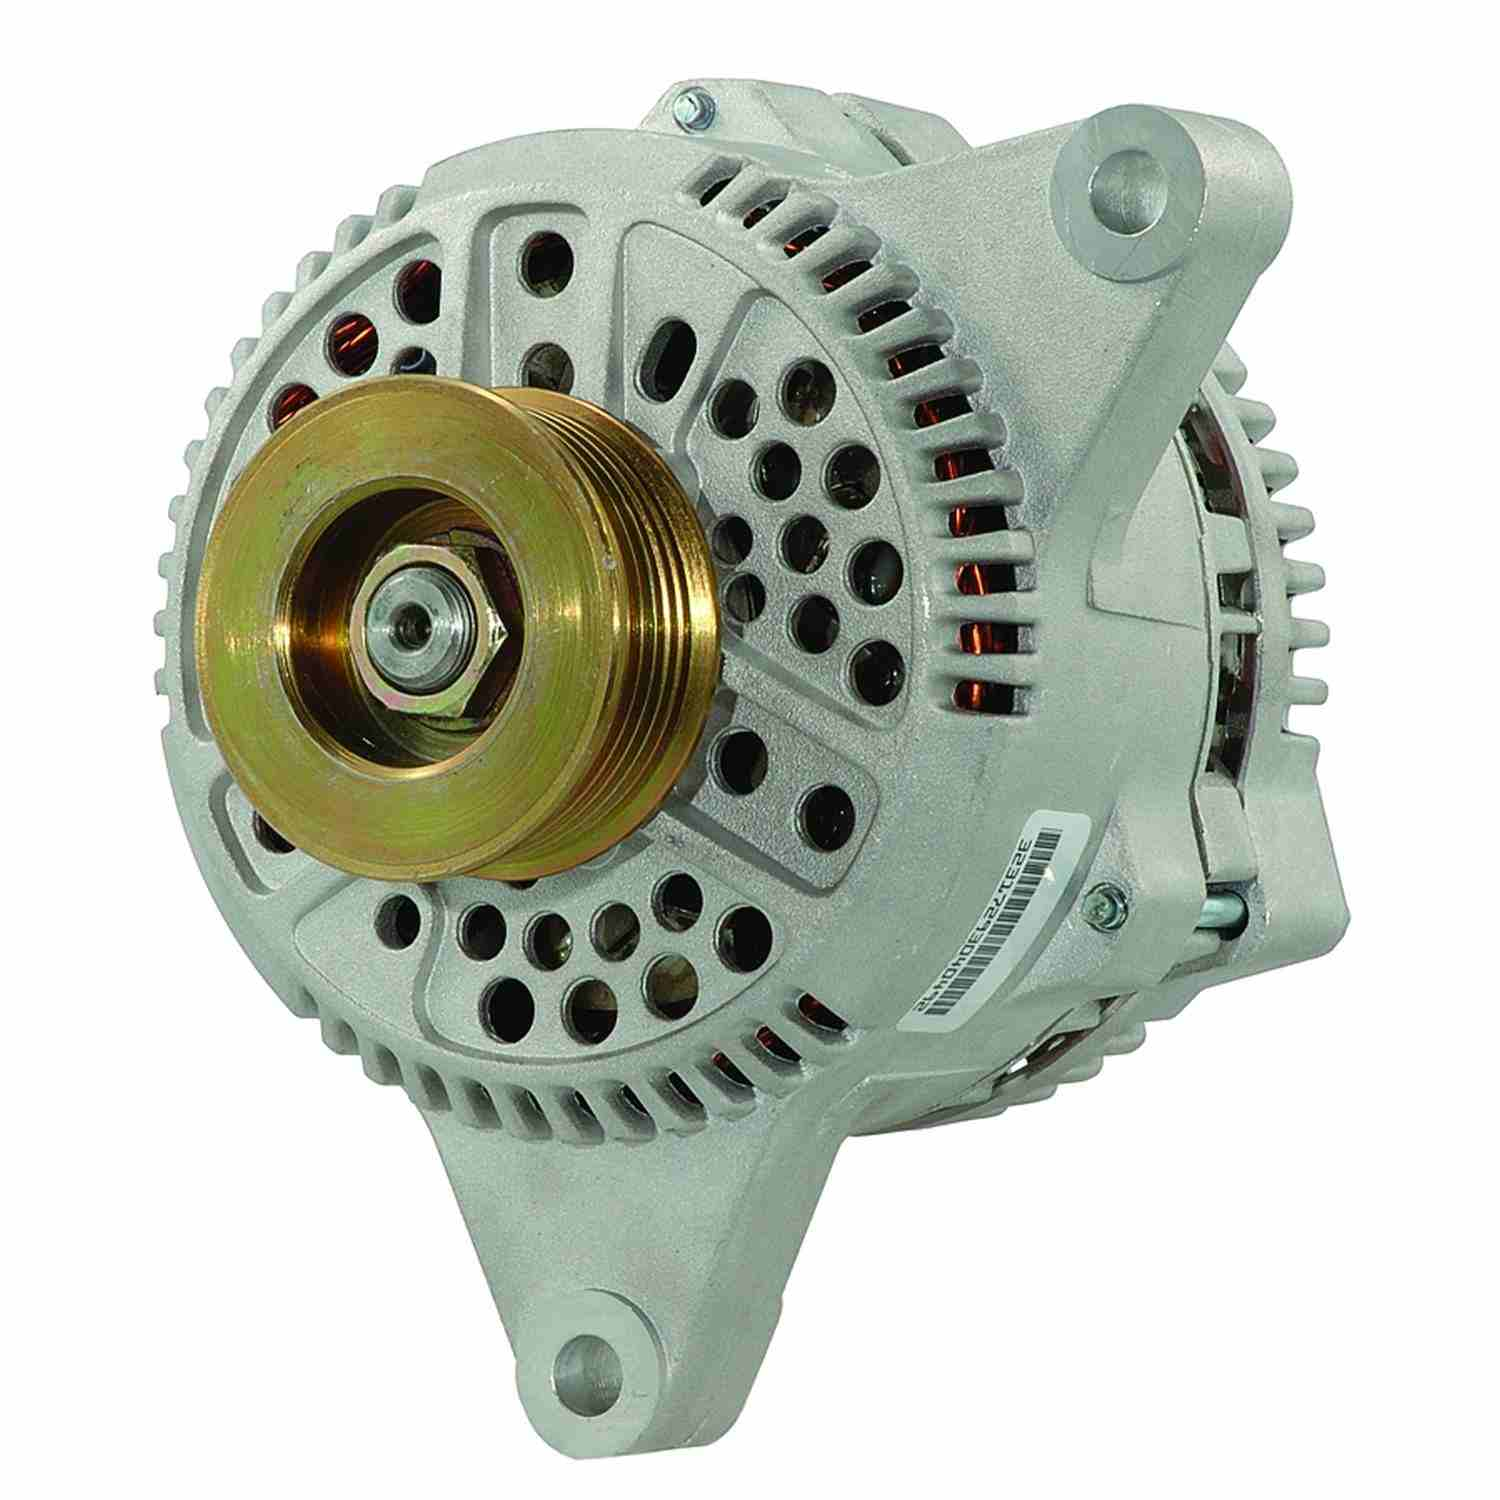 ACDELCO GOLD/PROFESSIONAL - Alternator - DCC 335-1116